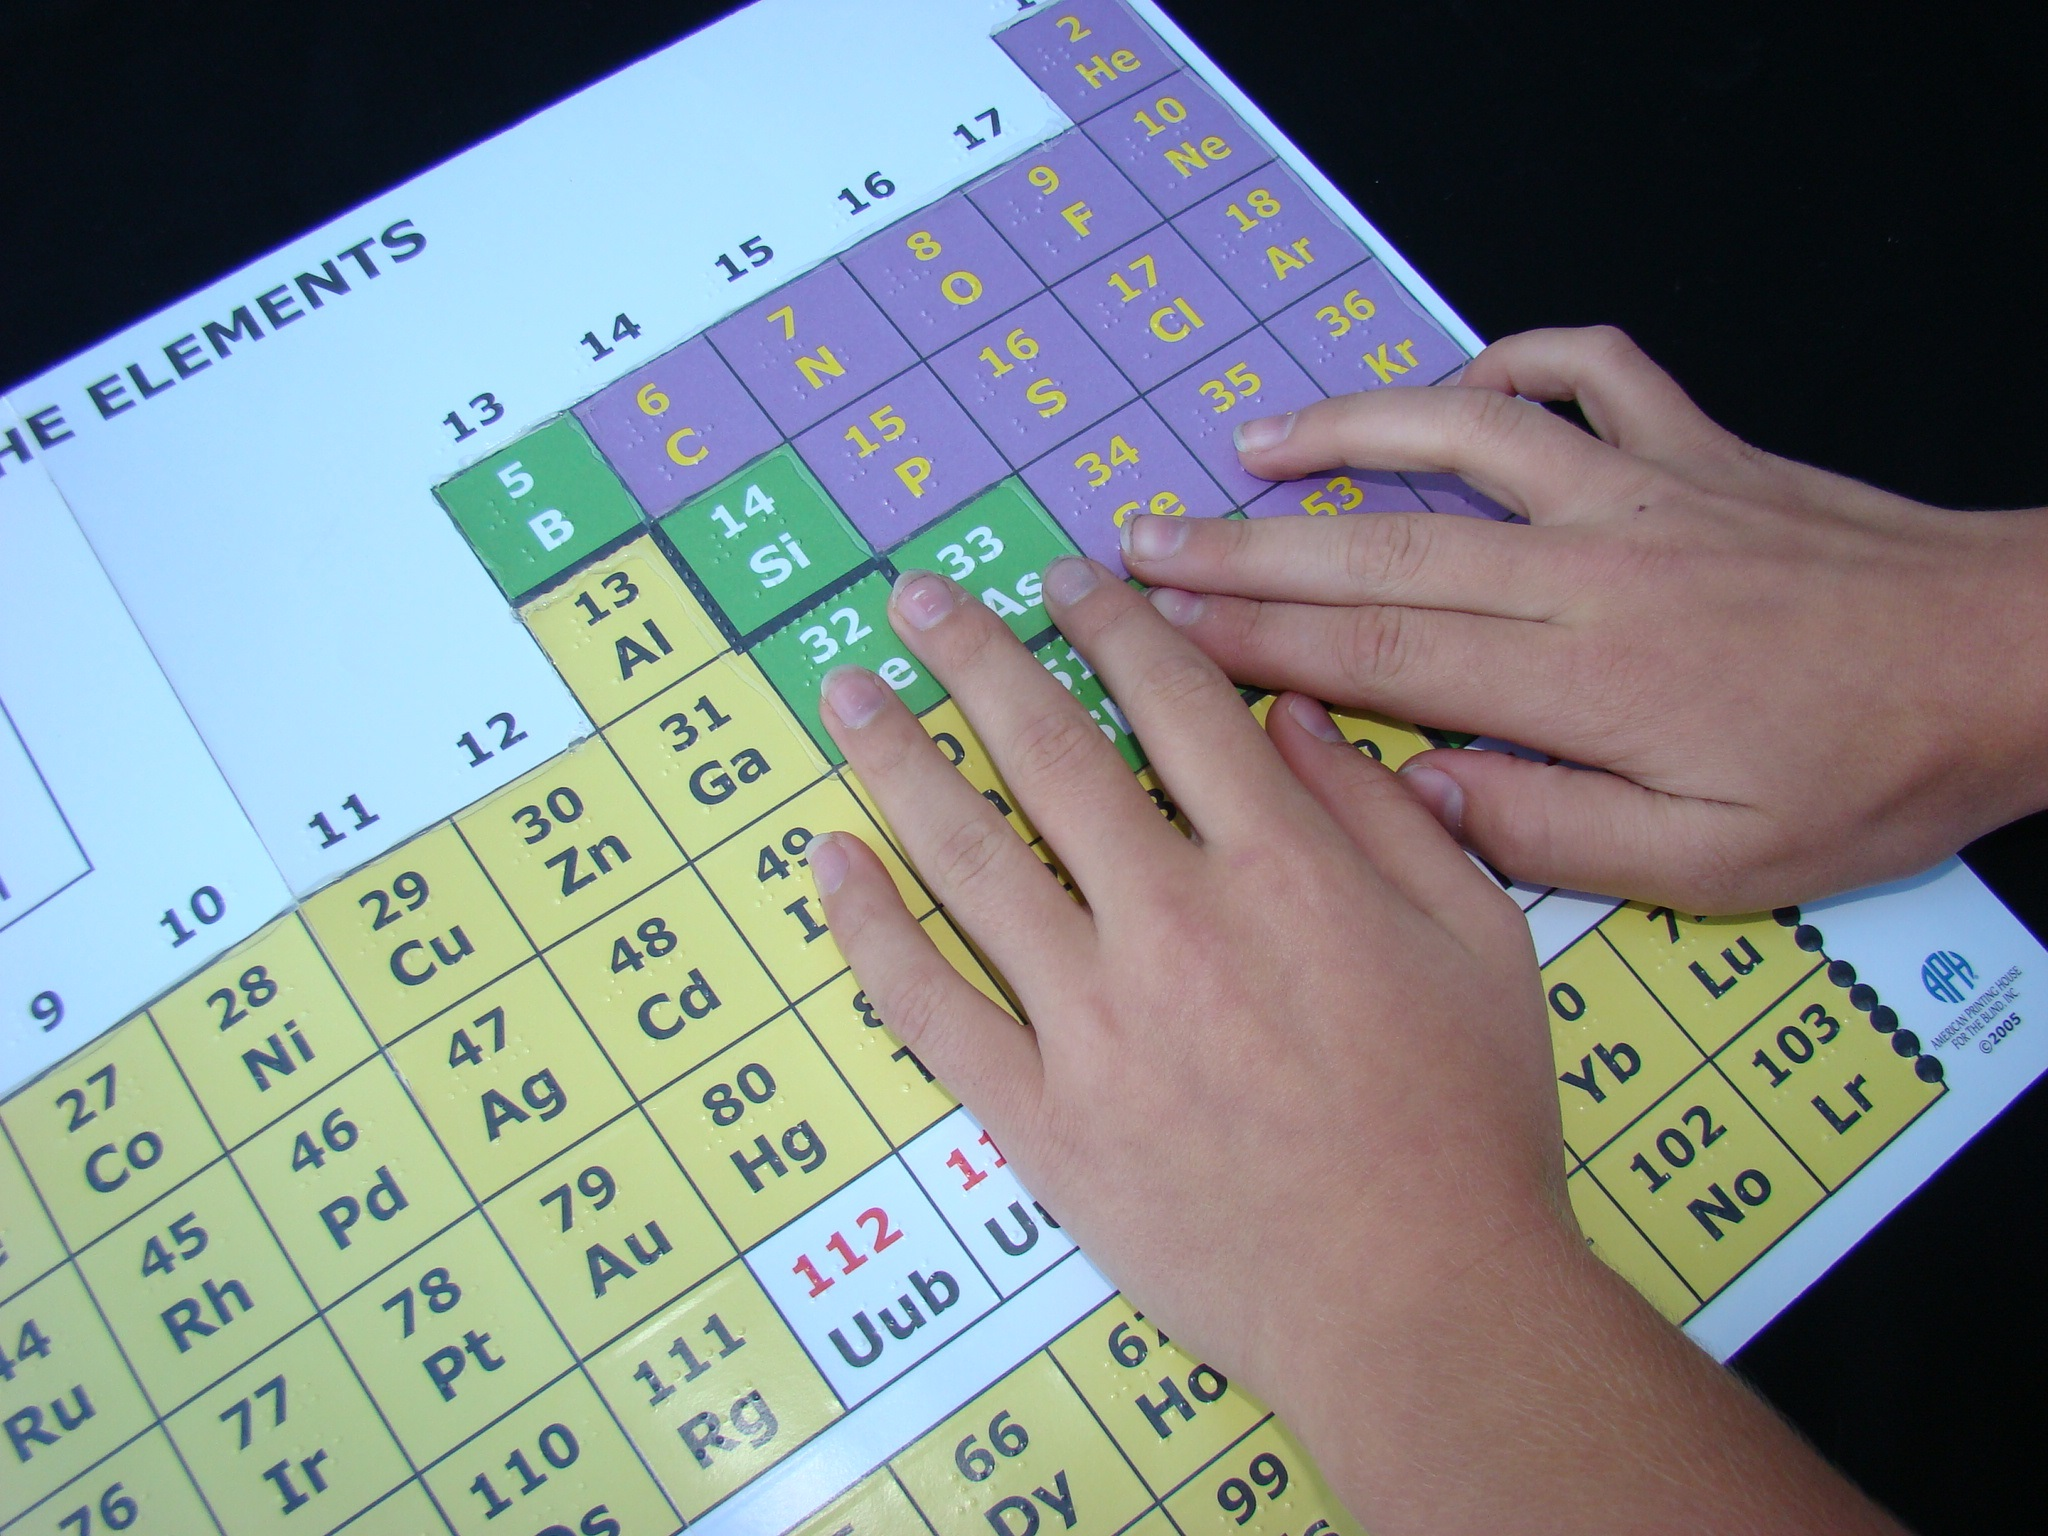 Adapting the aph periodic table to indicate major element groups adapting the aph periodic table to indicate major element groups perkins elearning urtaz Gallery